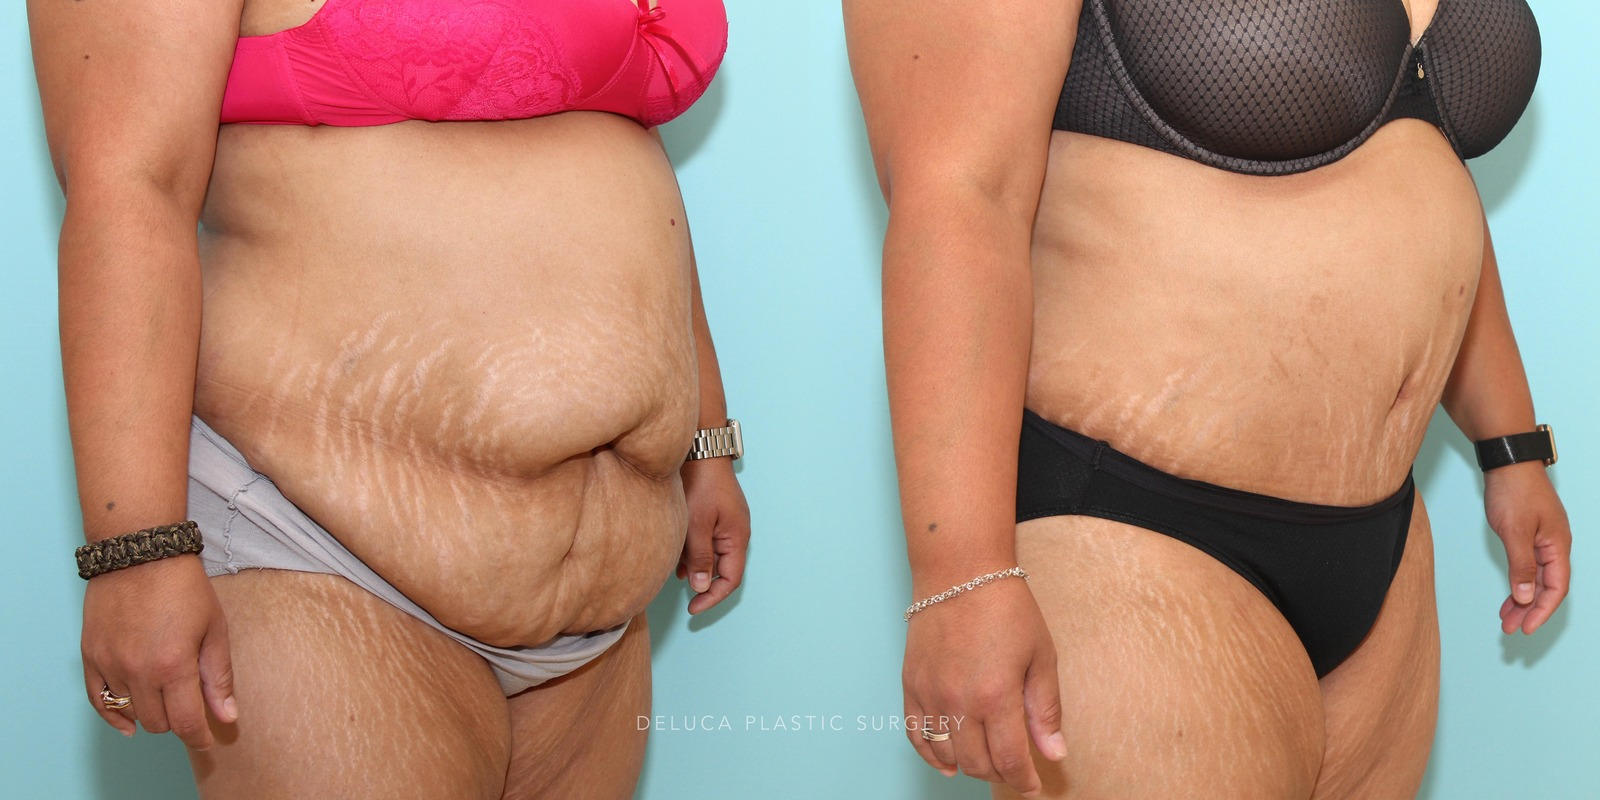 39 year old Tummy Tuck (Abdominoplasty)